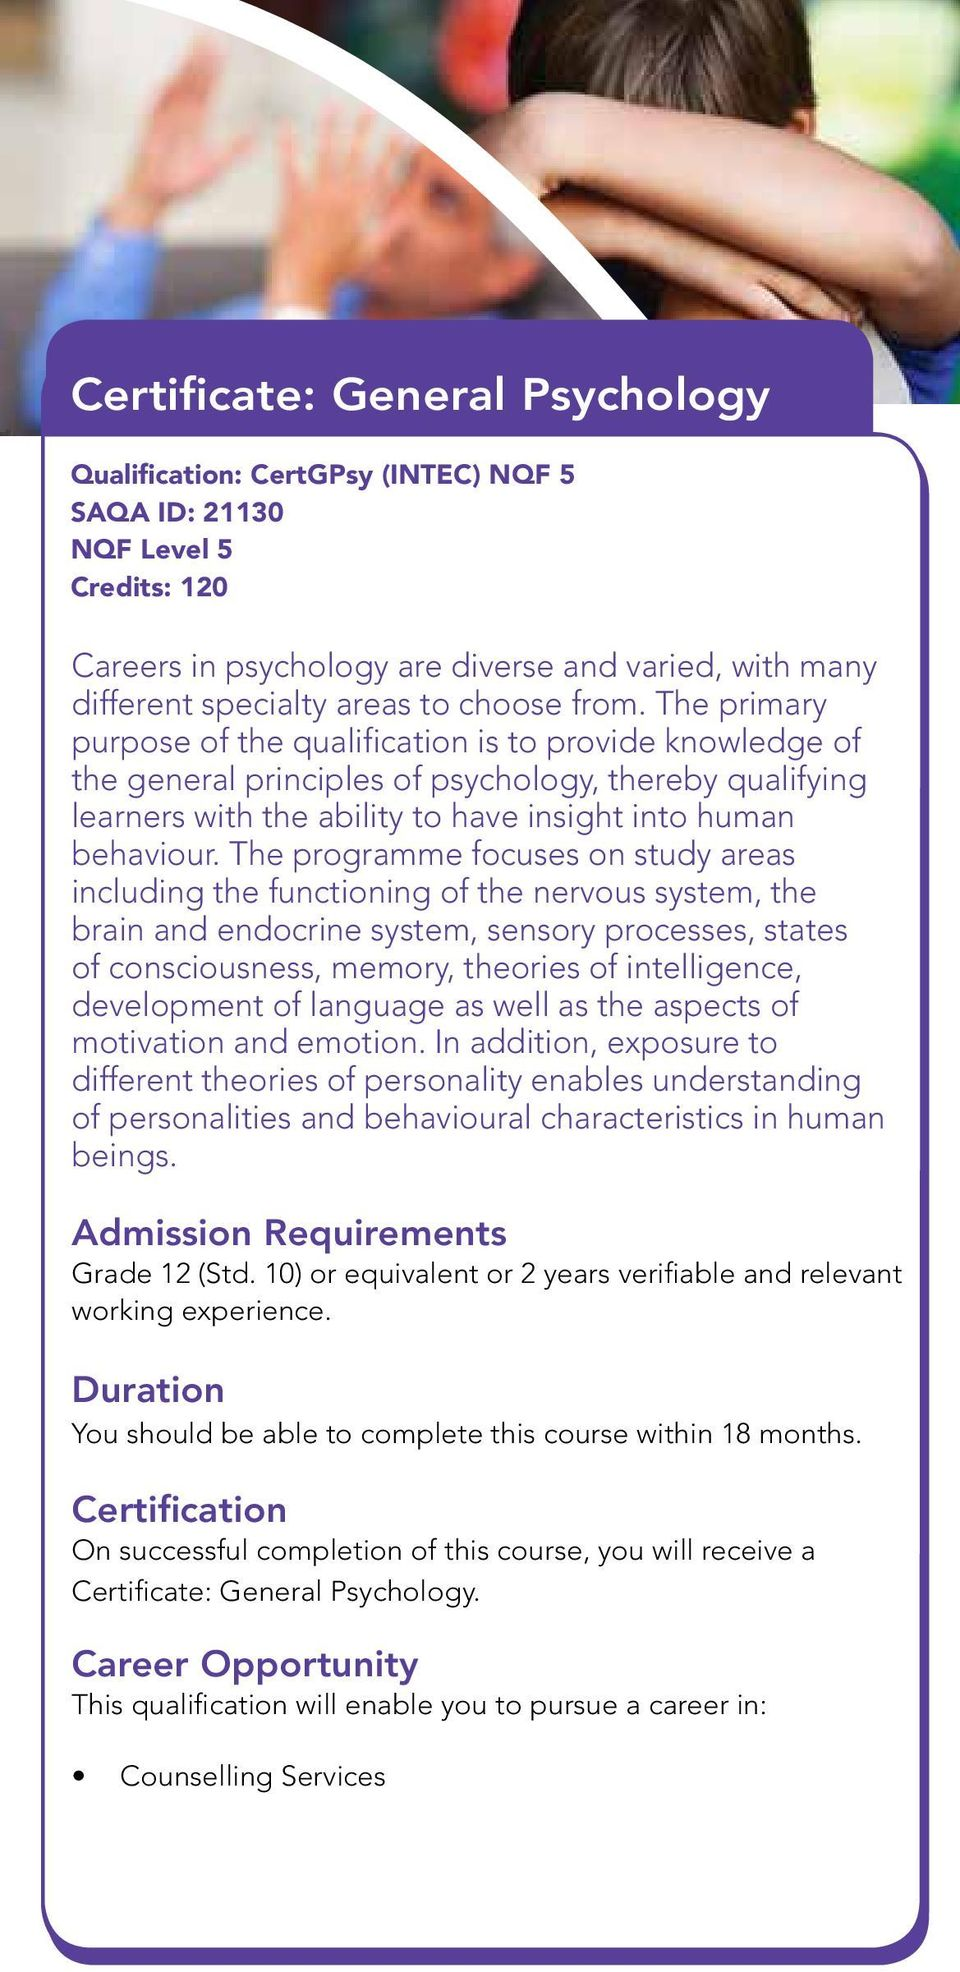 The primary purpose of the qualification is to provide knowledge of the general principles of psychology, thereby qualifying learners with the ability to have insight into human behaviour.